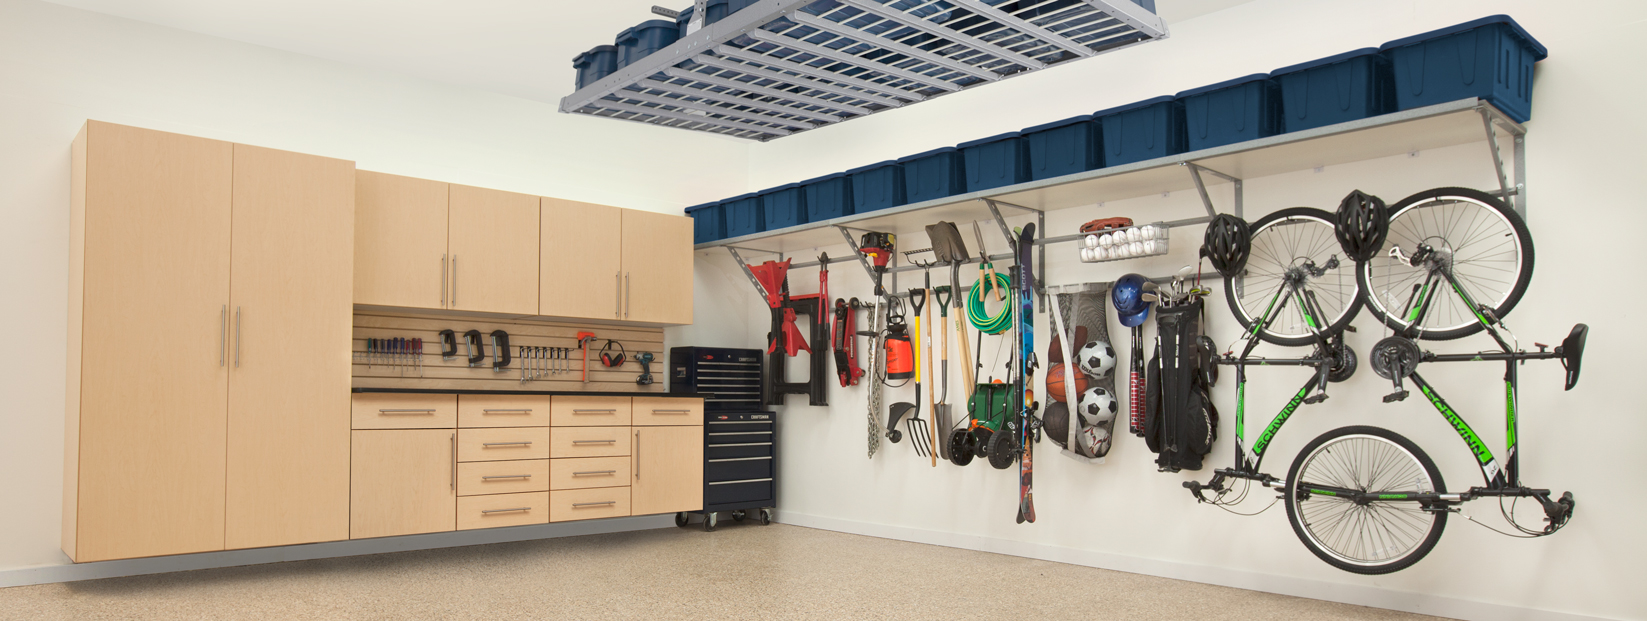 Durable Garage Storage in Crossville